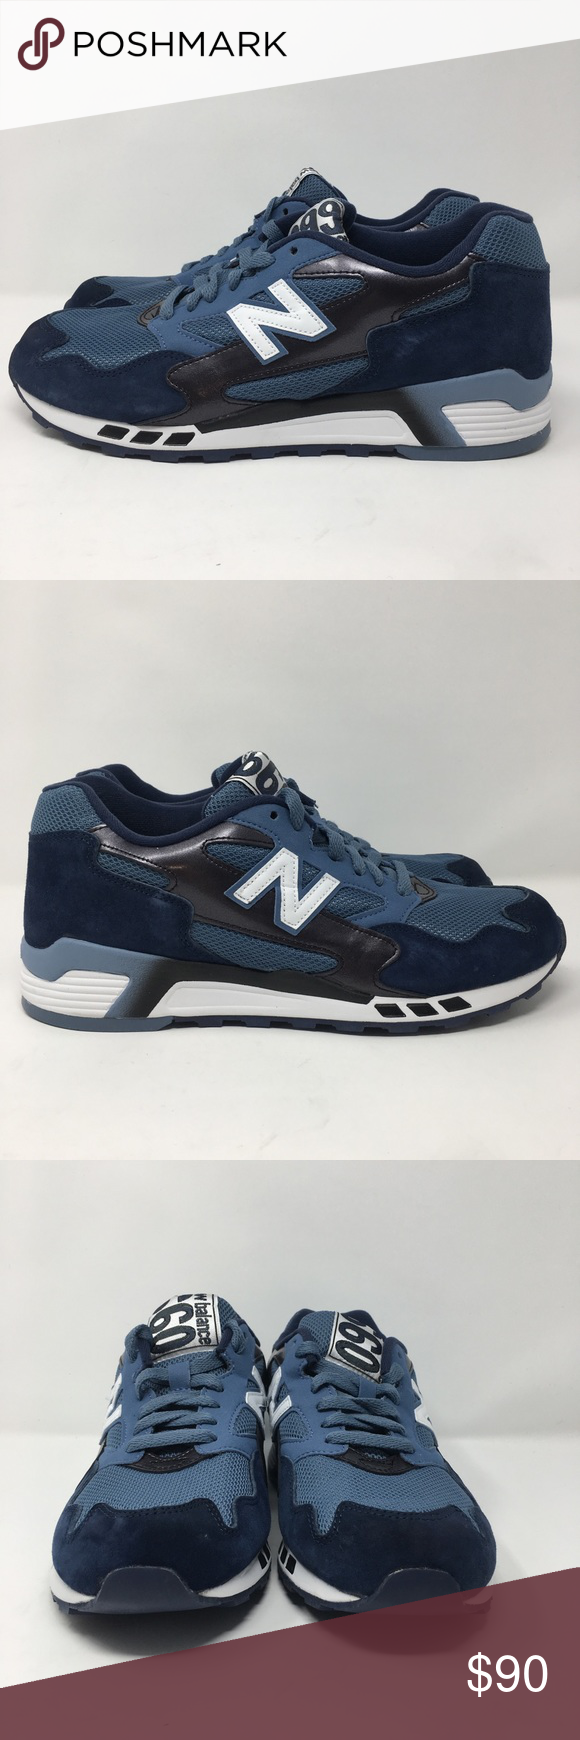 lesson Clean the floor Arctic  New Balance 660 ML660SND Men's Blue Suede Rare NWT (With images) | Blue  suede, Suede, New balance shoes